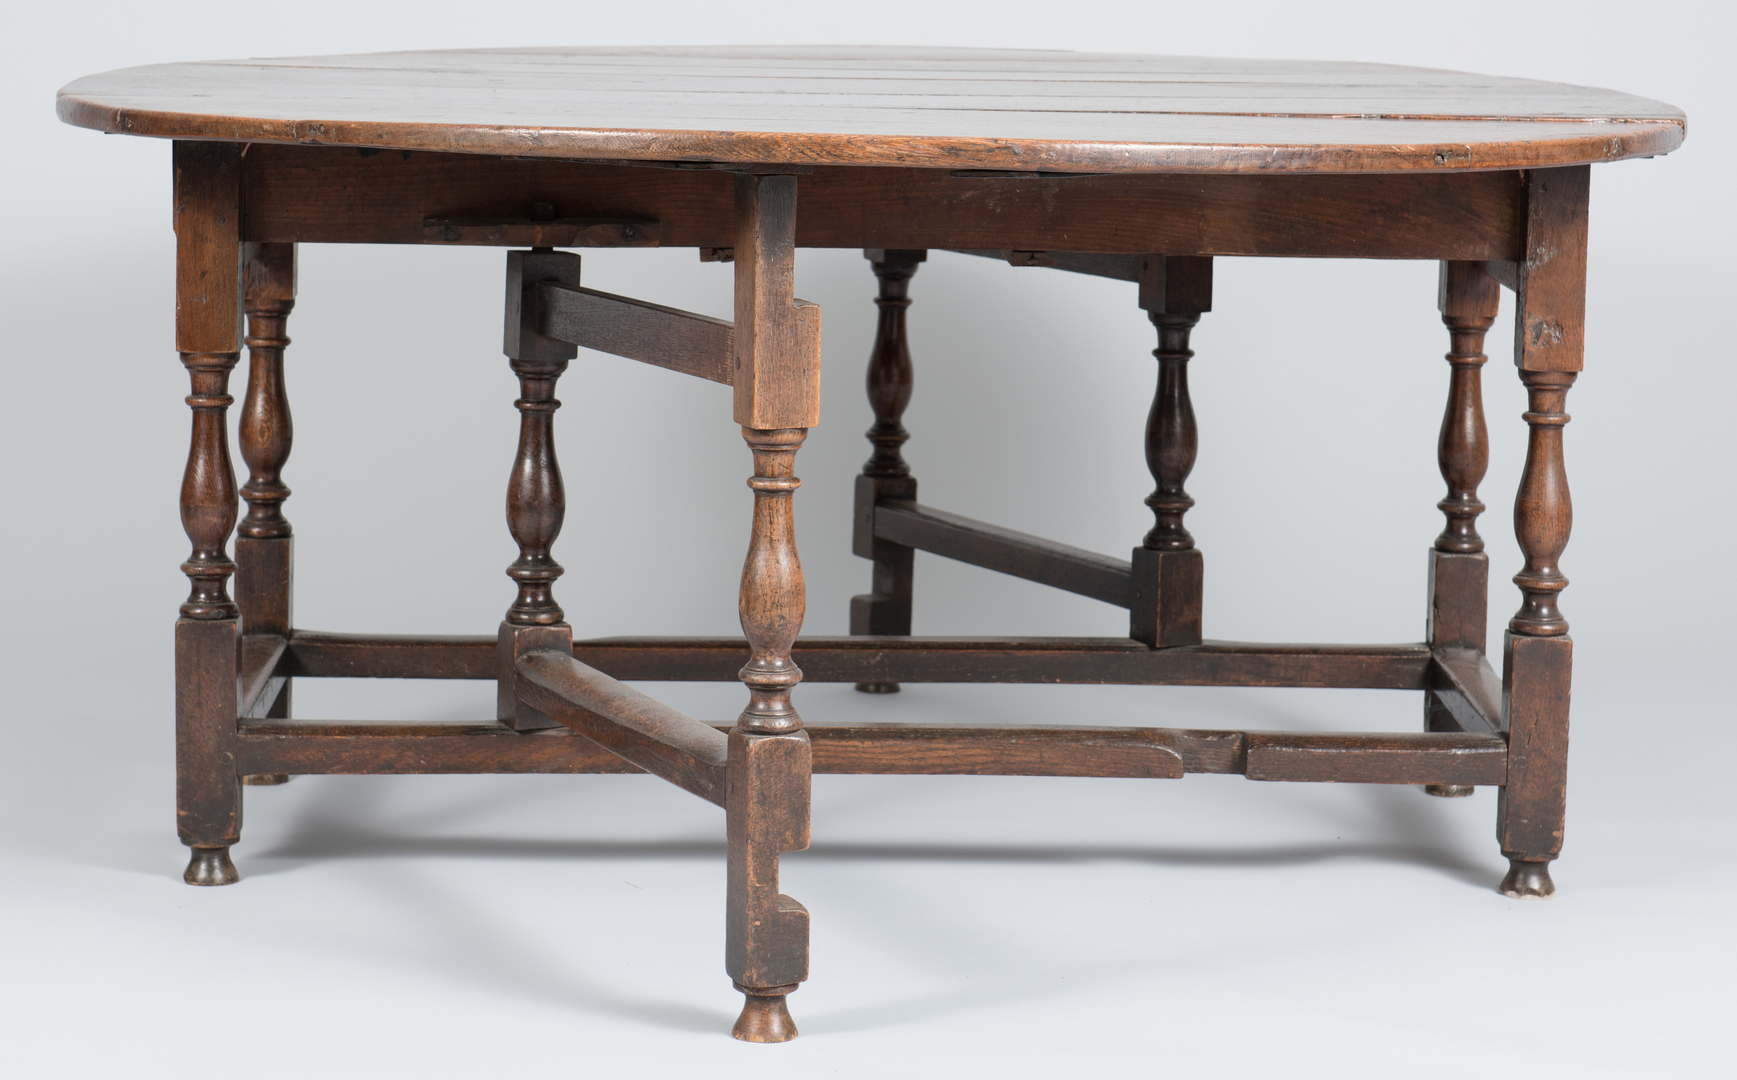 Lot 100 William and Mary Oak Dining Table : 1005 from caseantiques.com size 1737 x 1080 jpeg 1364kB